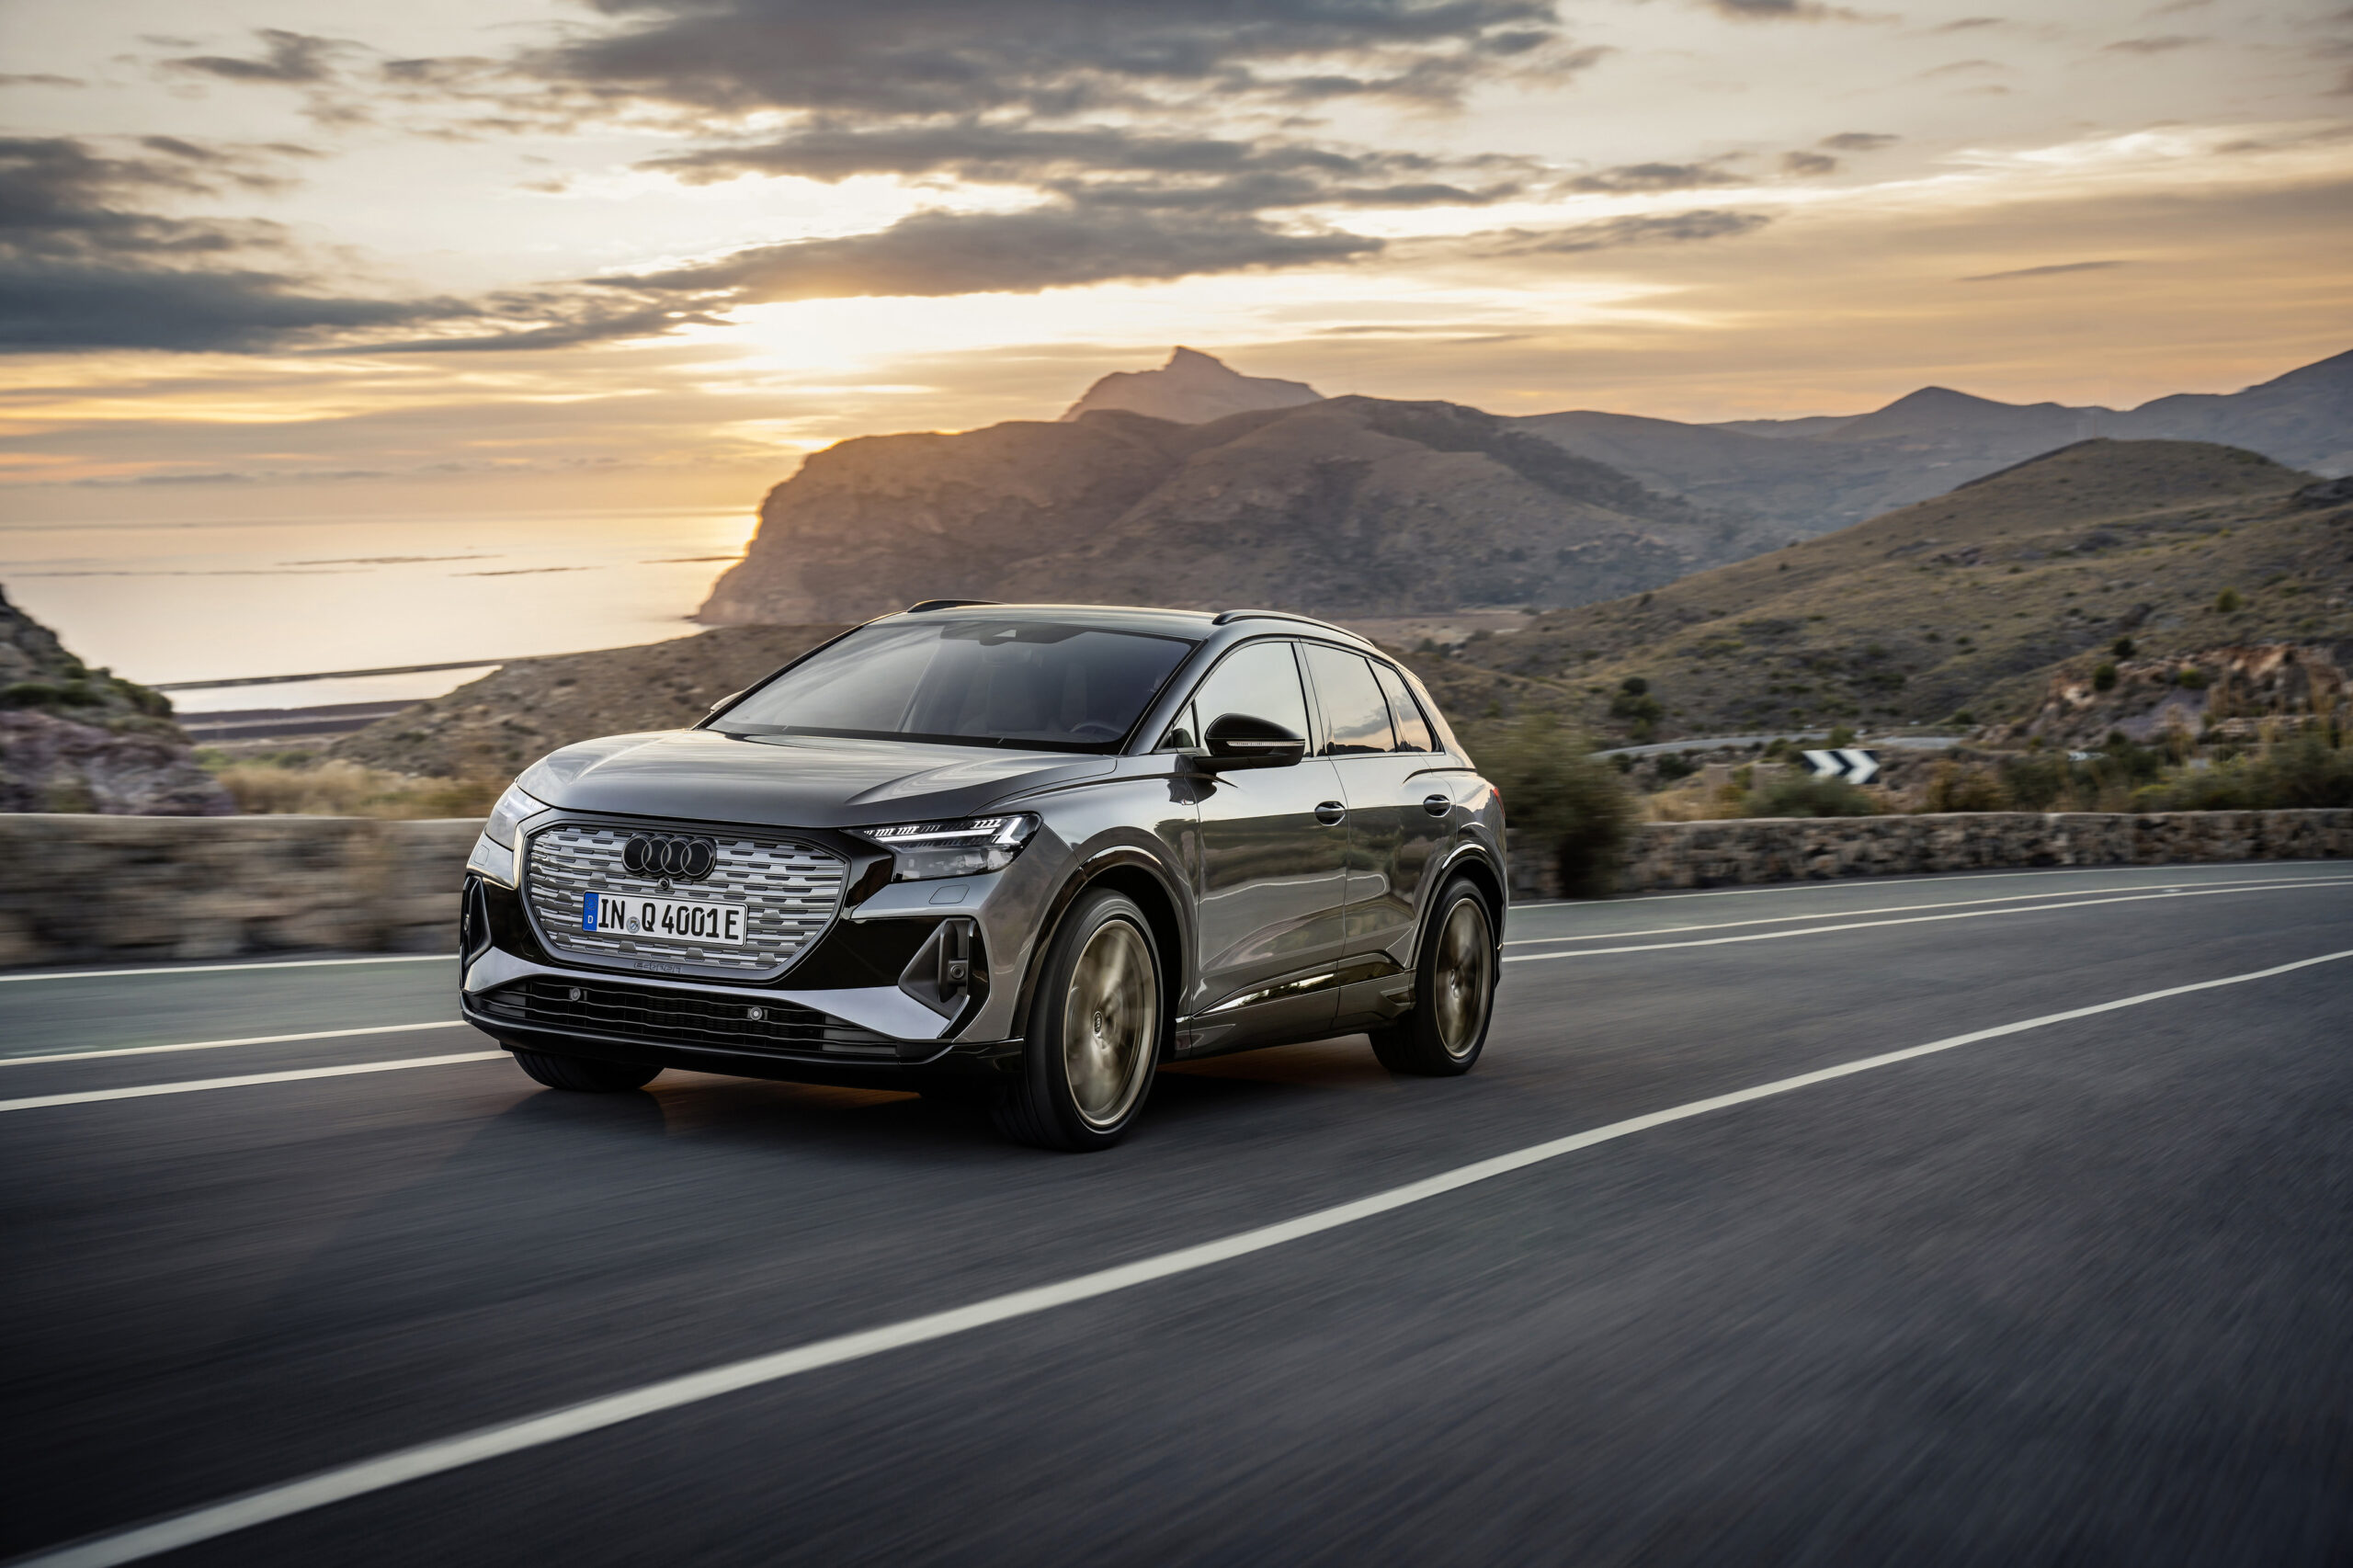 Audi's Q4 e-tron crossover in action.